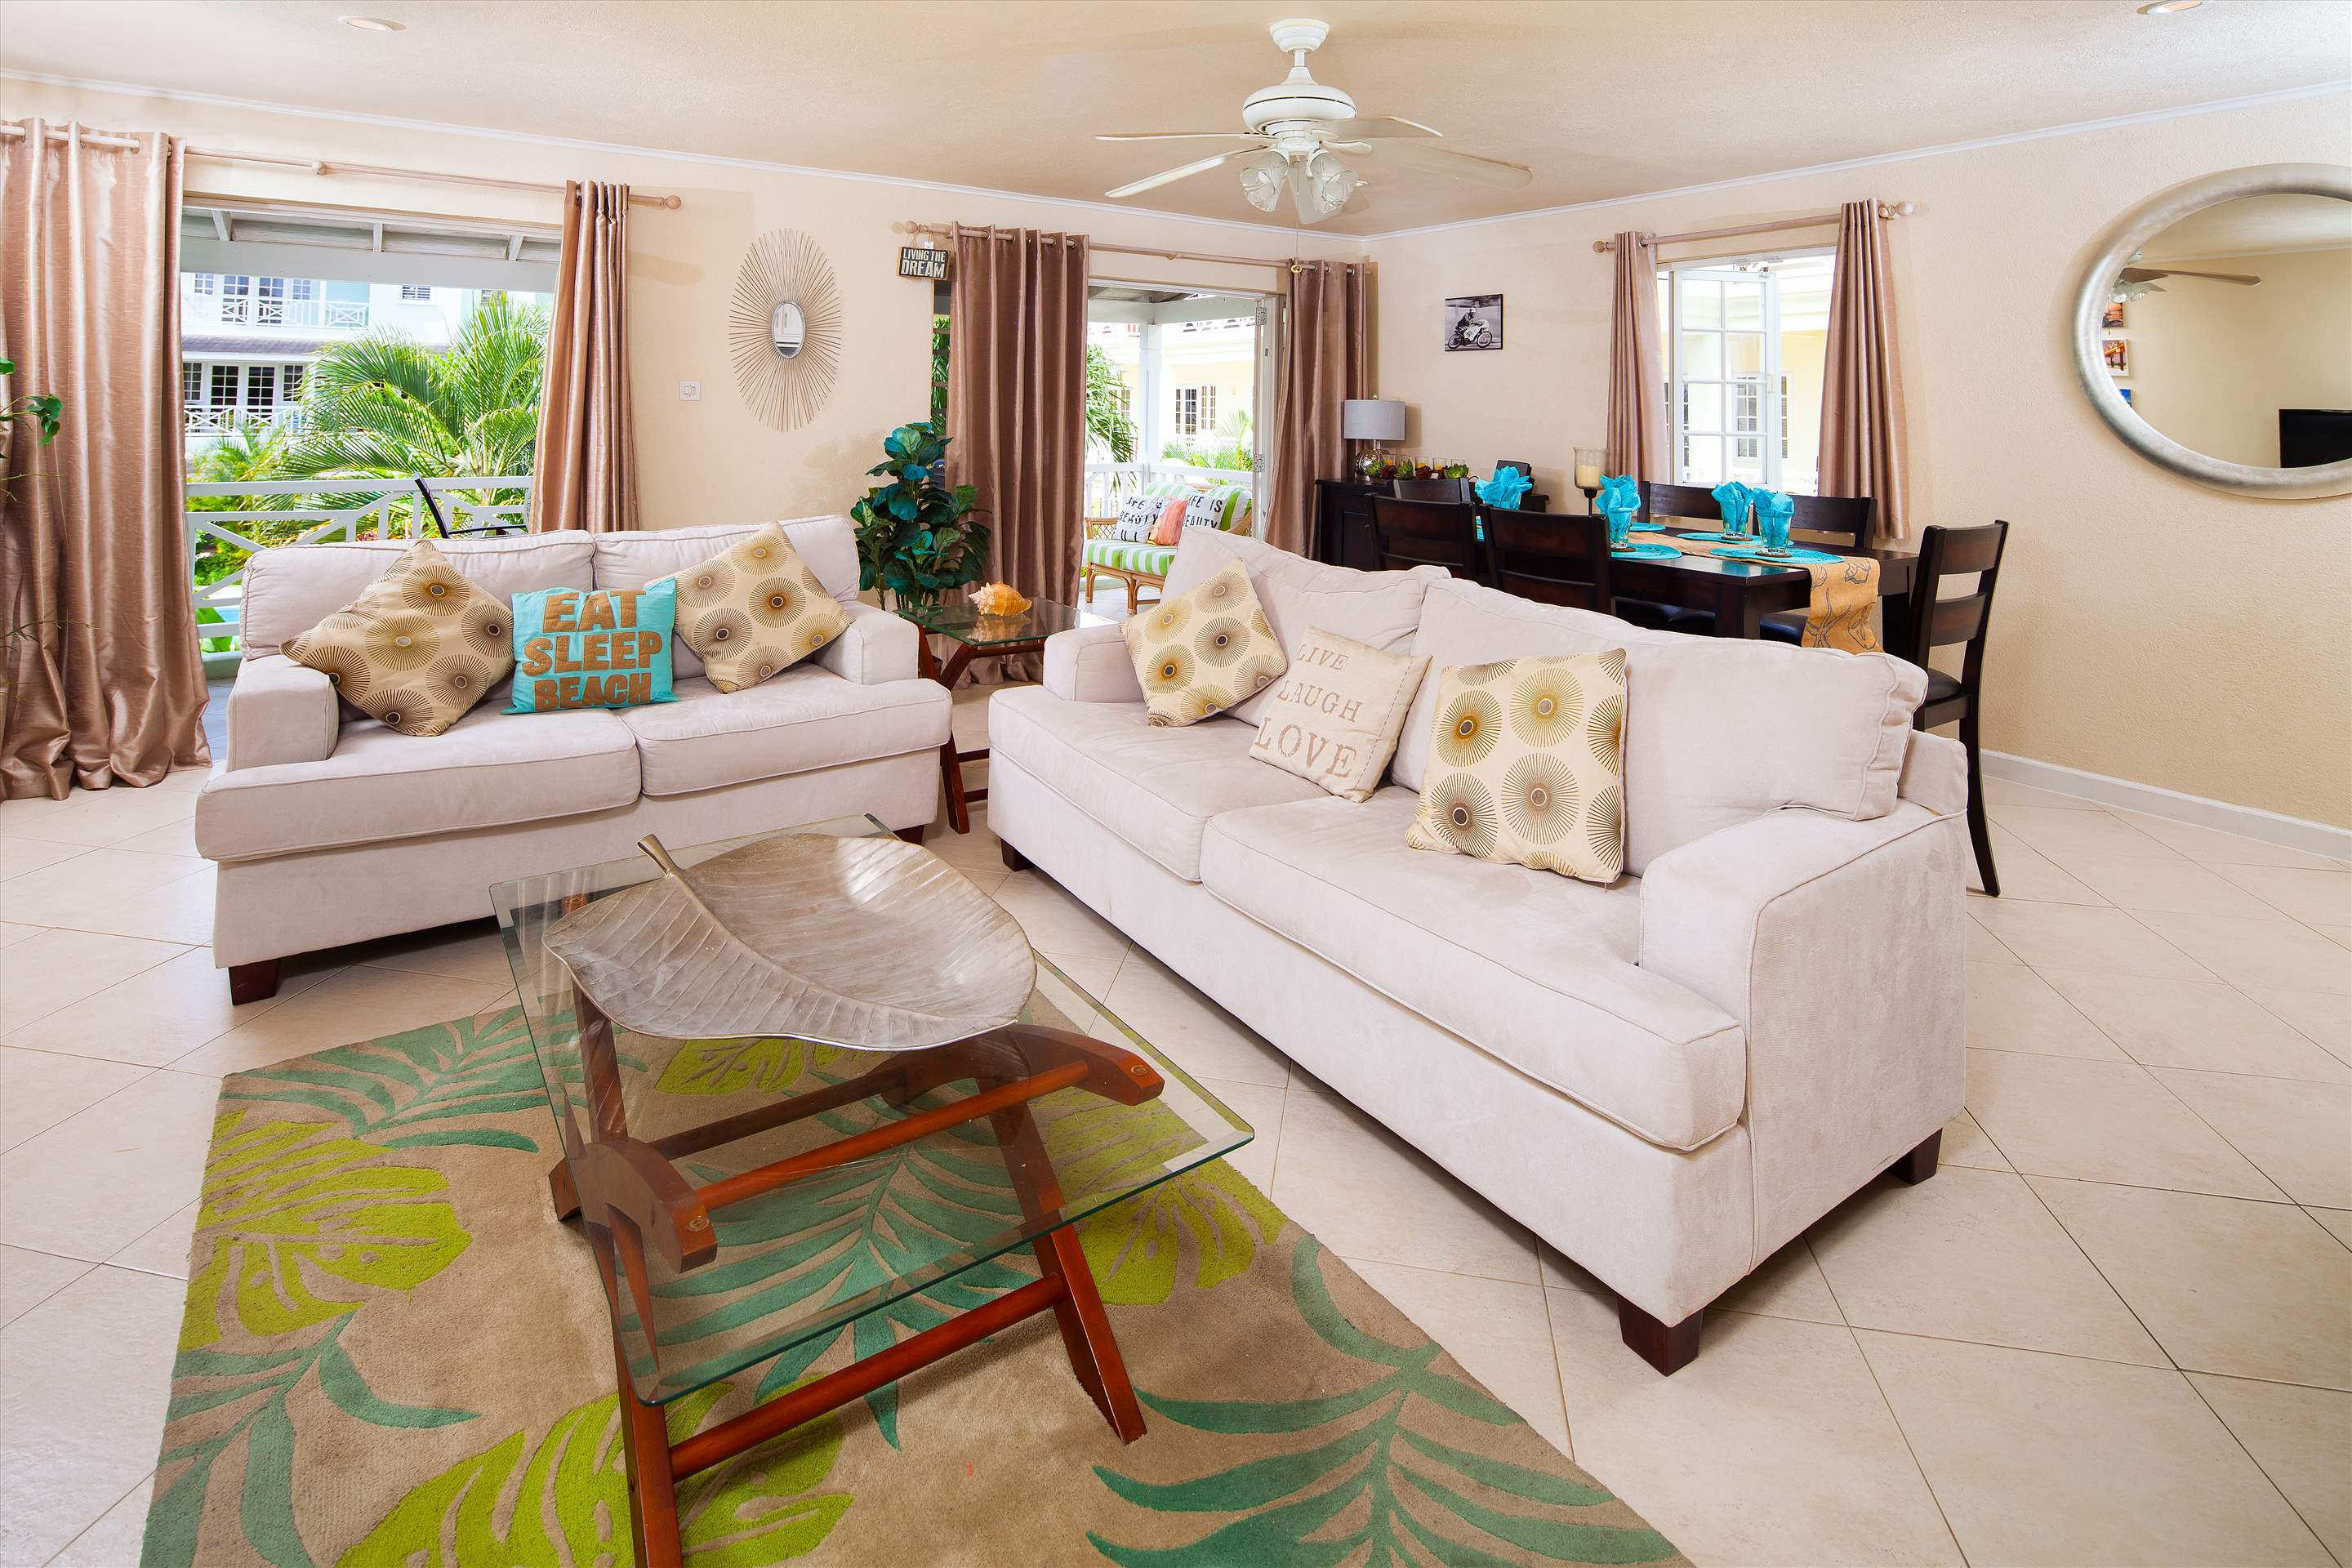 Margate Gardens 4, 2 bedroom, 2 bedroom apartment in St. Lawrence Gap & South Coast, Barbados Photo #5